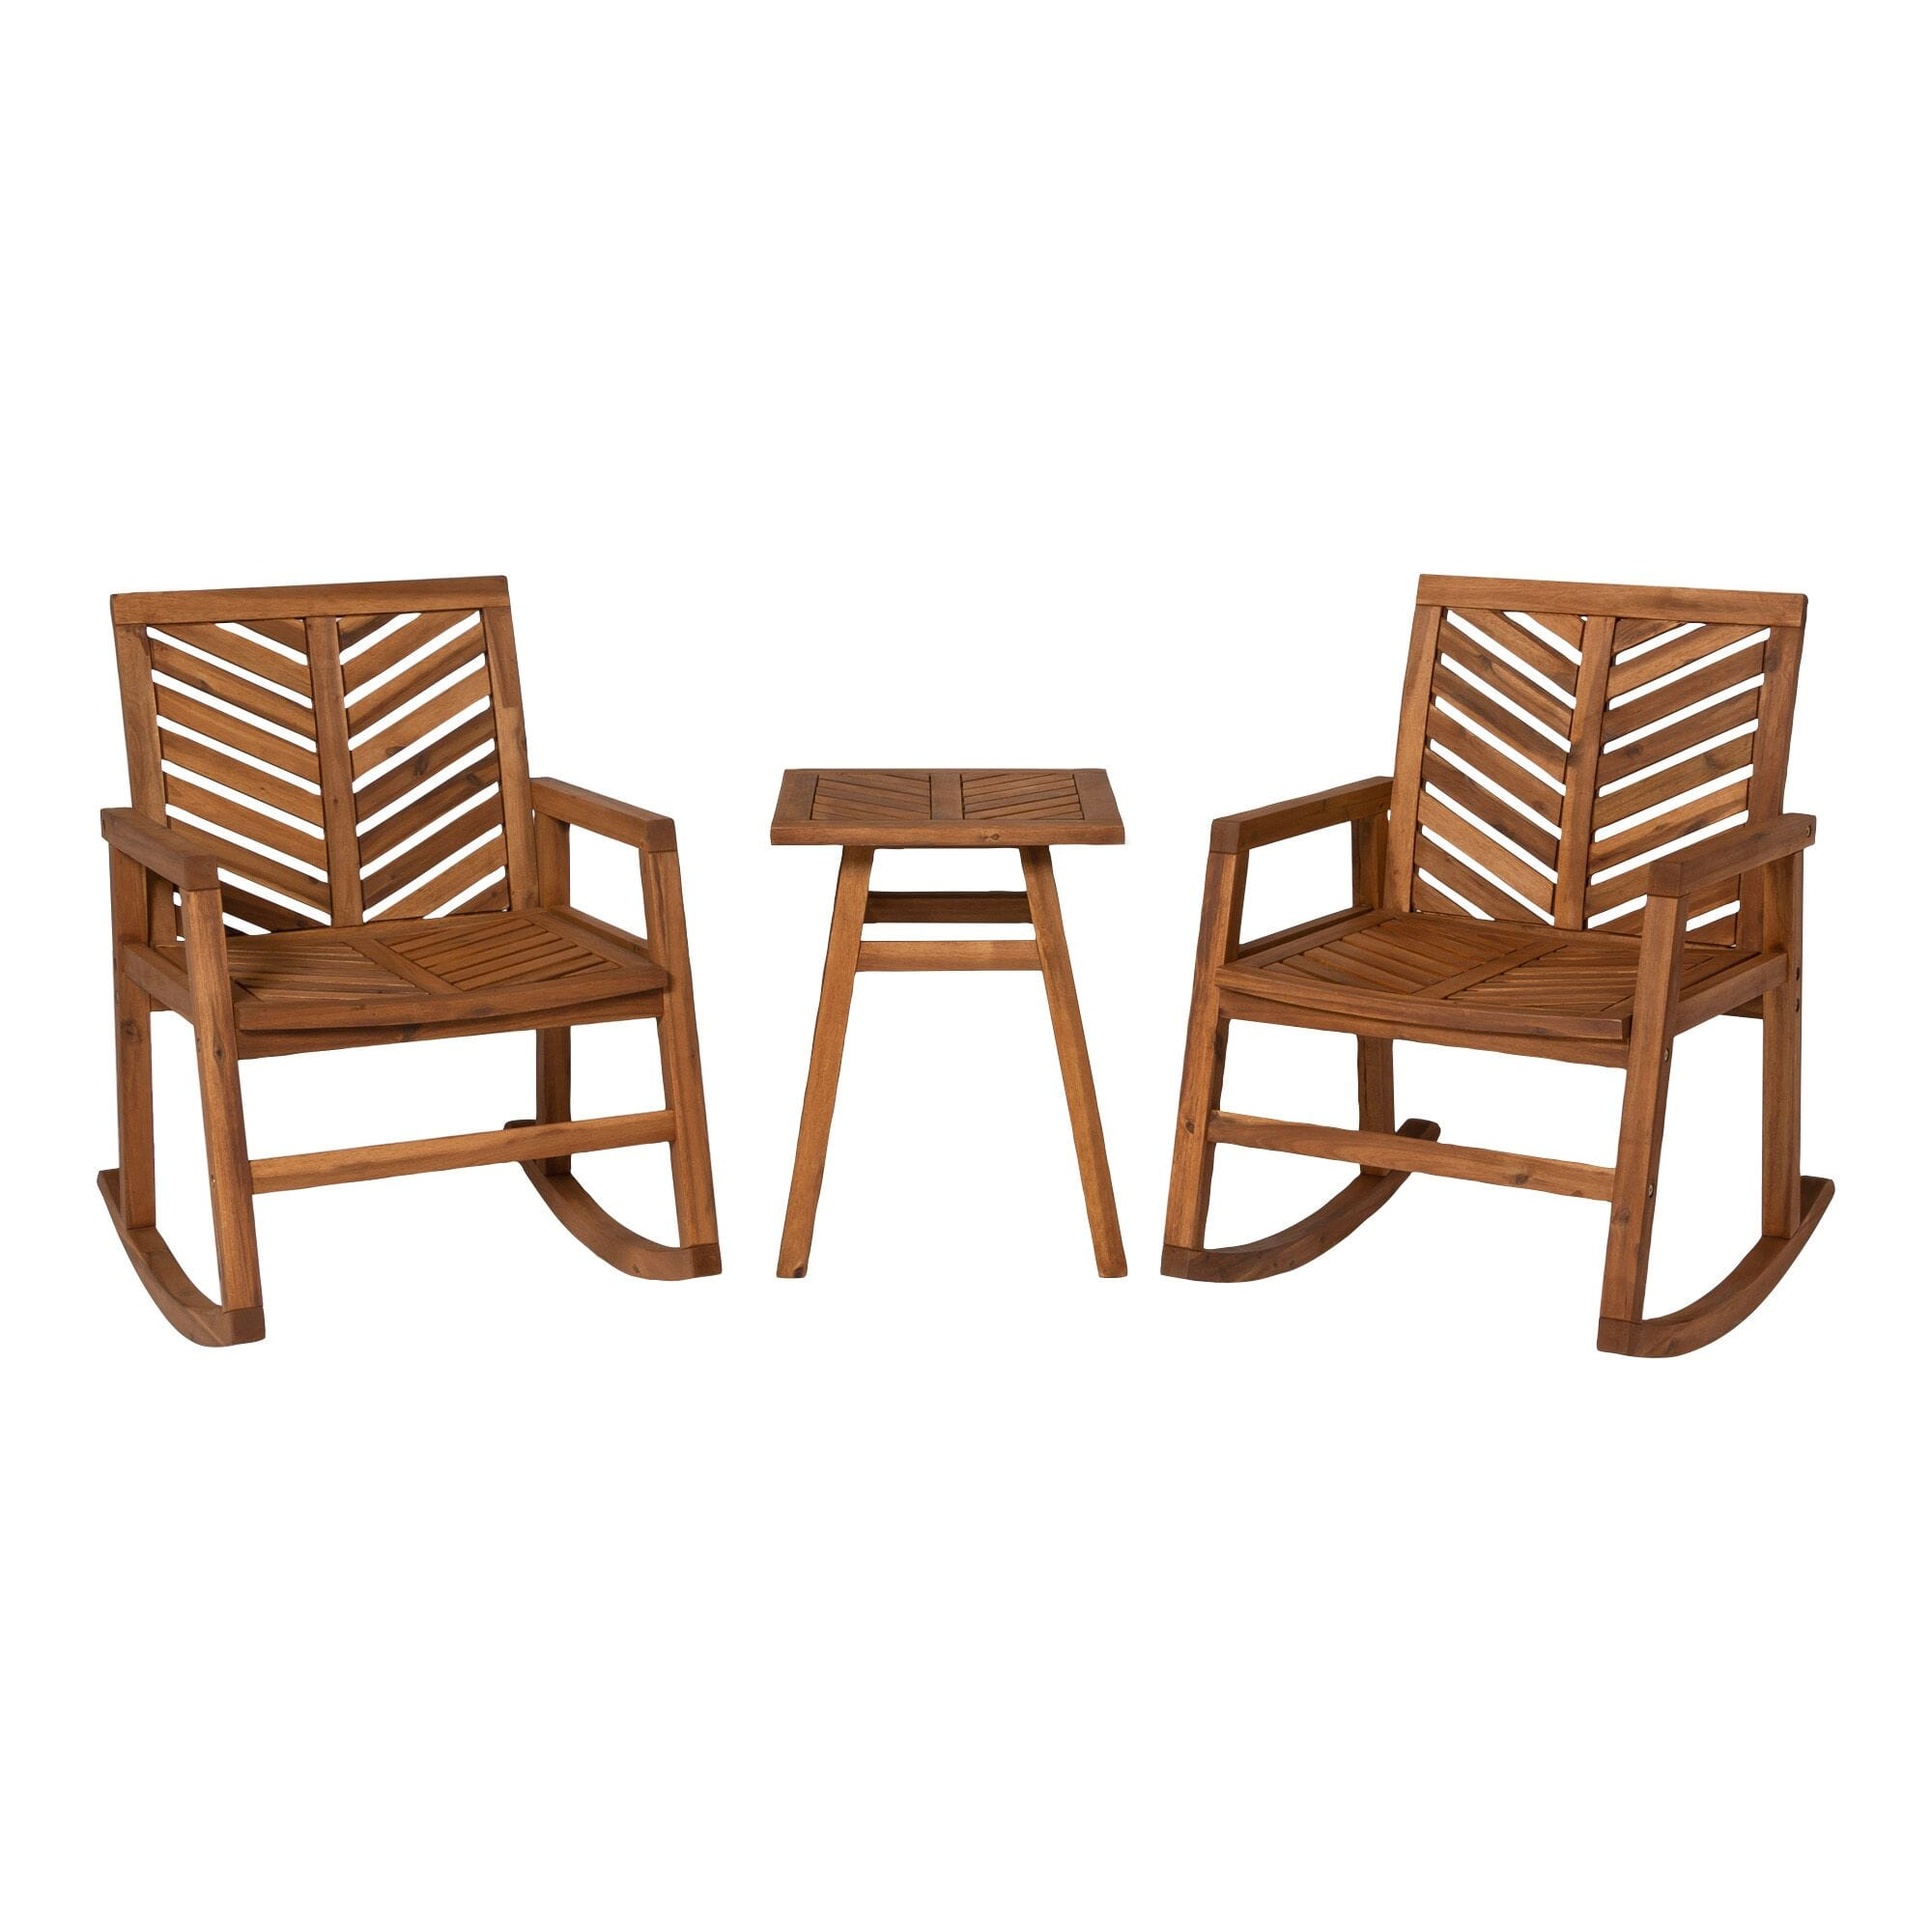 3 Piece Outdoor Rocking Chair Set, Outdoor Rocking Chairs Set Of 2